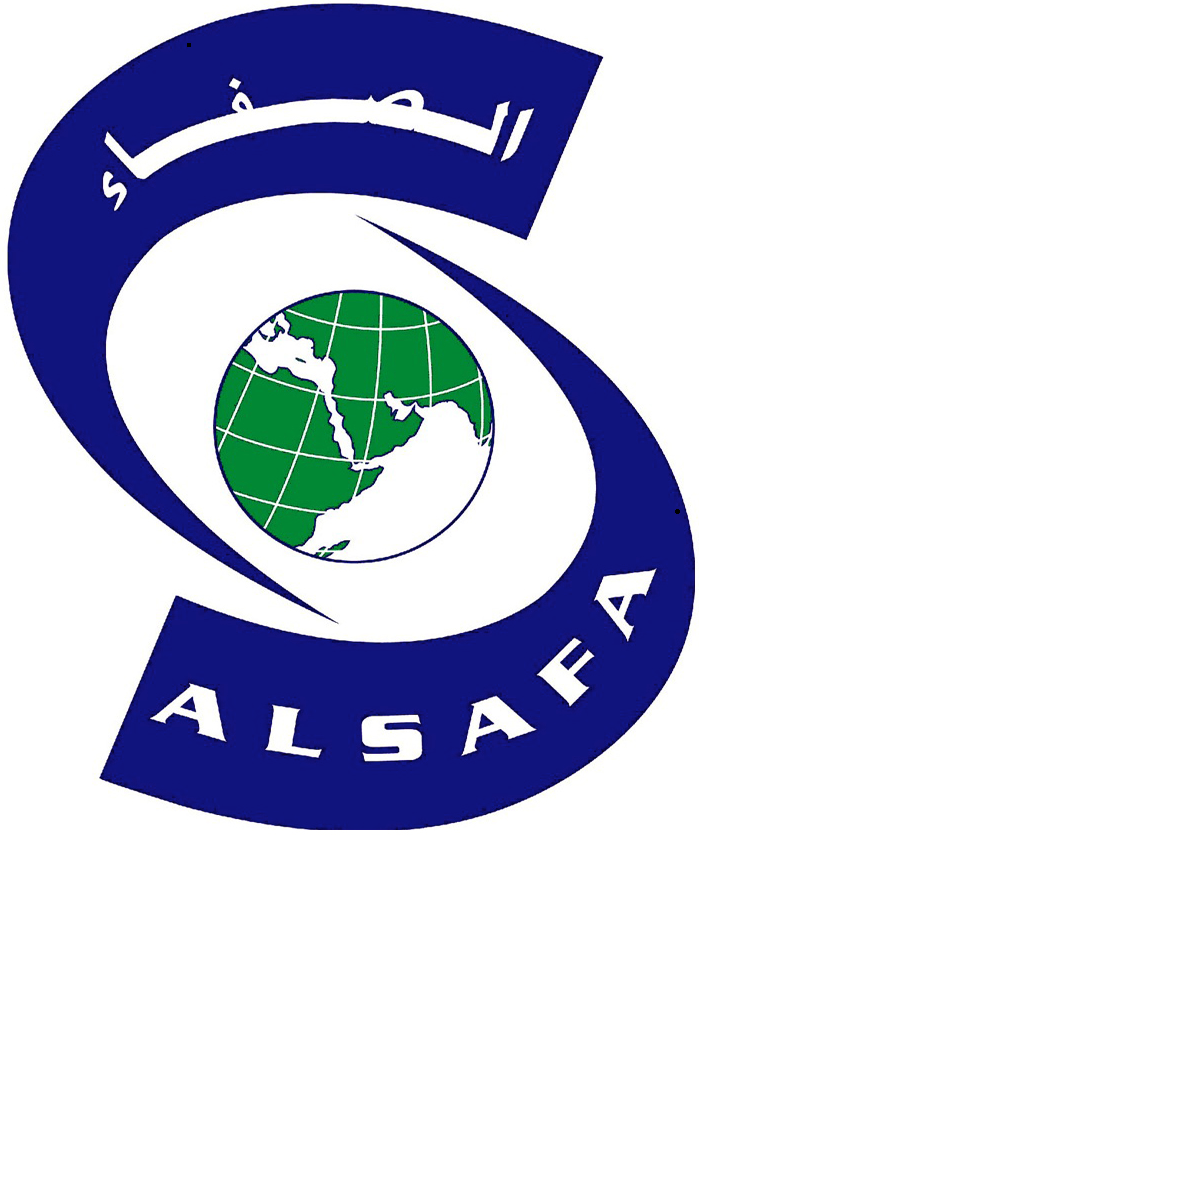 AETS - Oman Environmental Consultancy for audit, monitoring